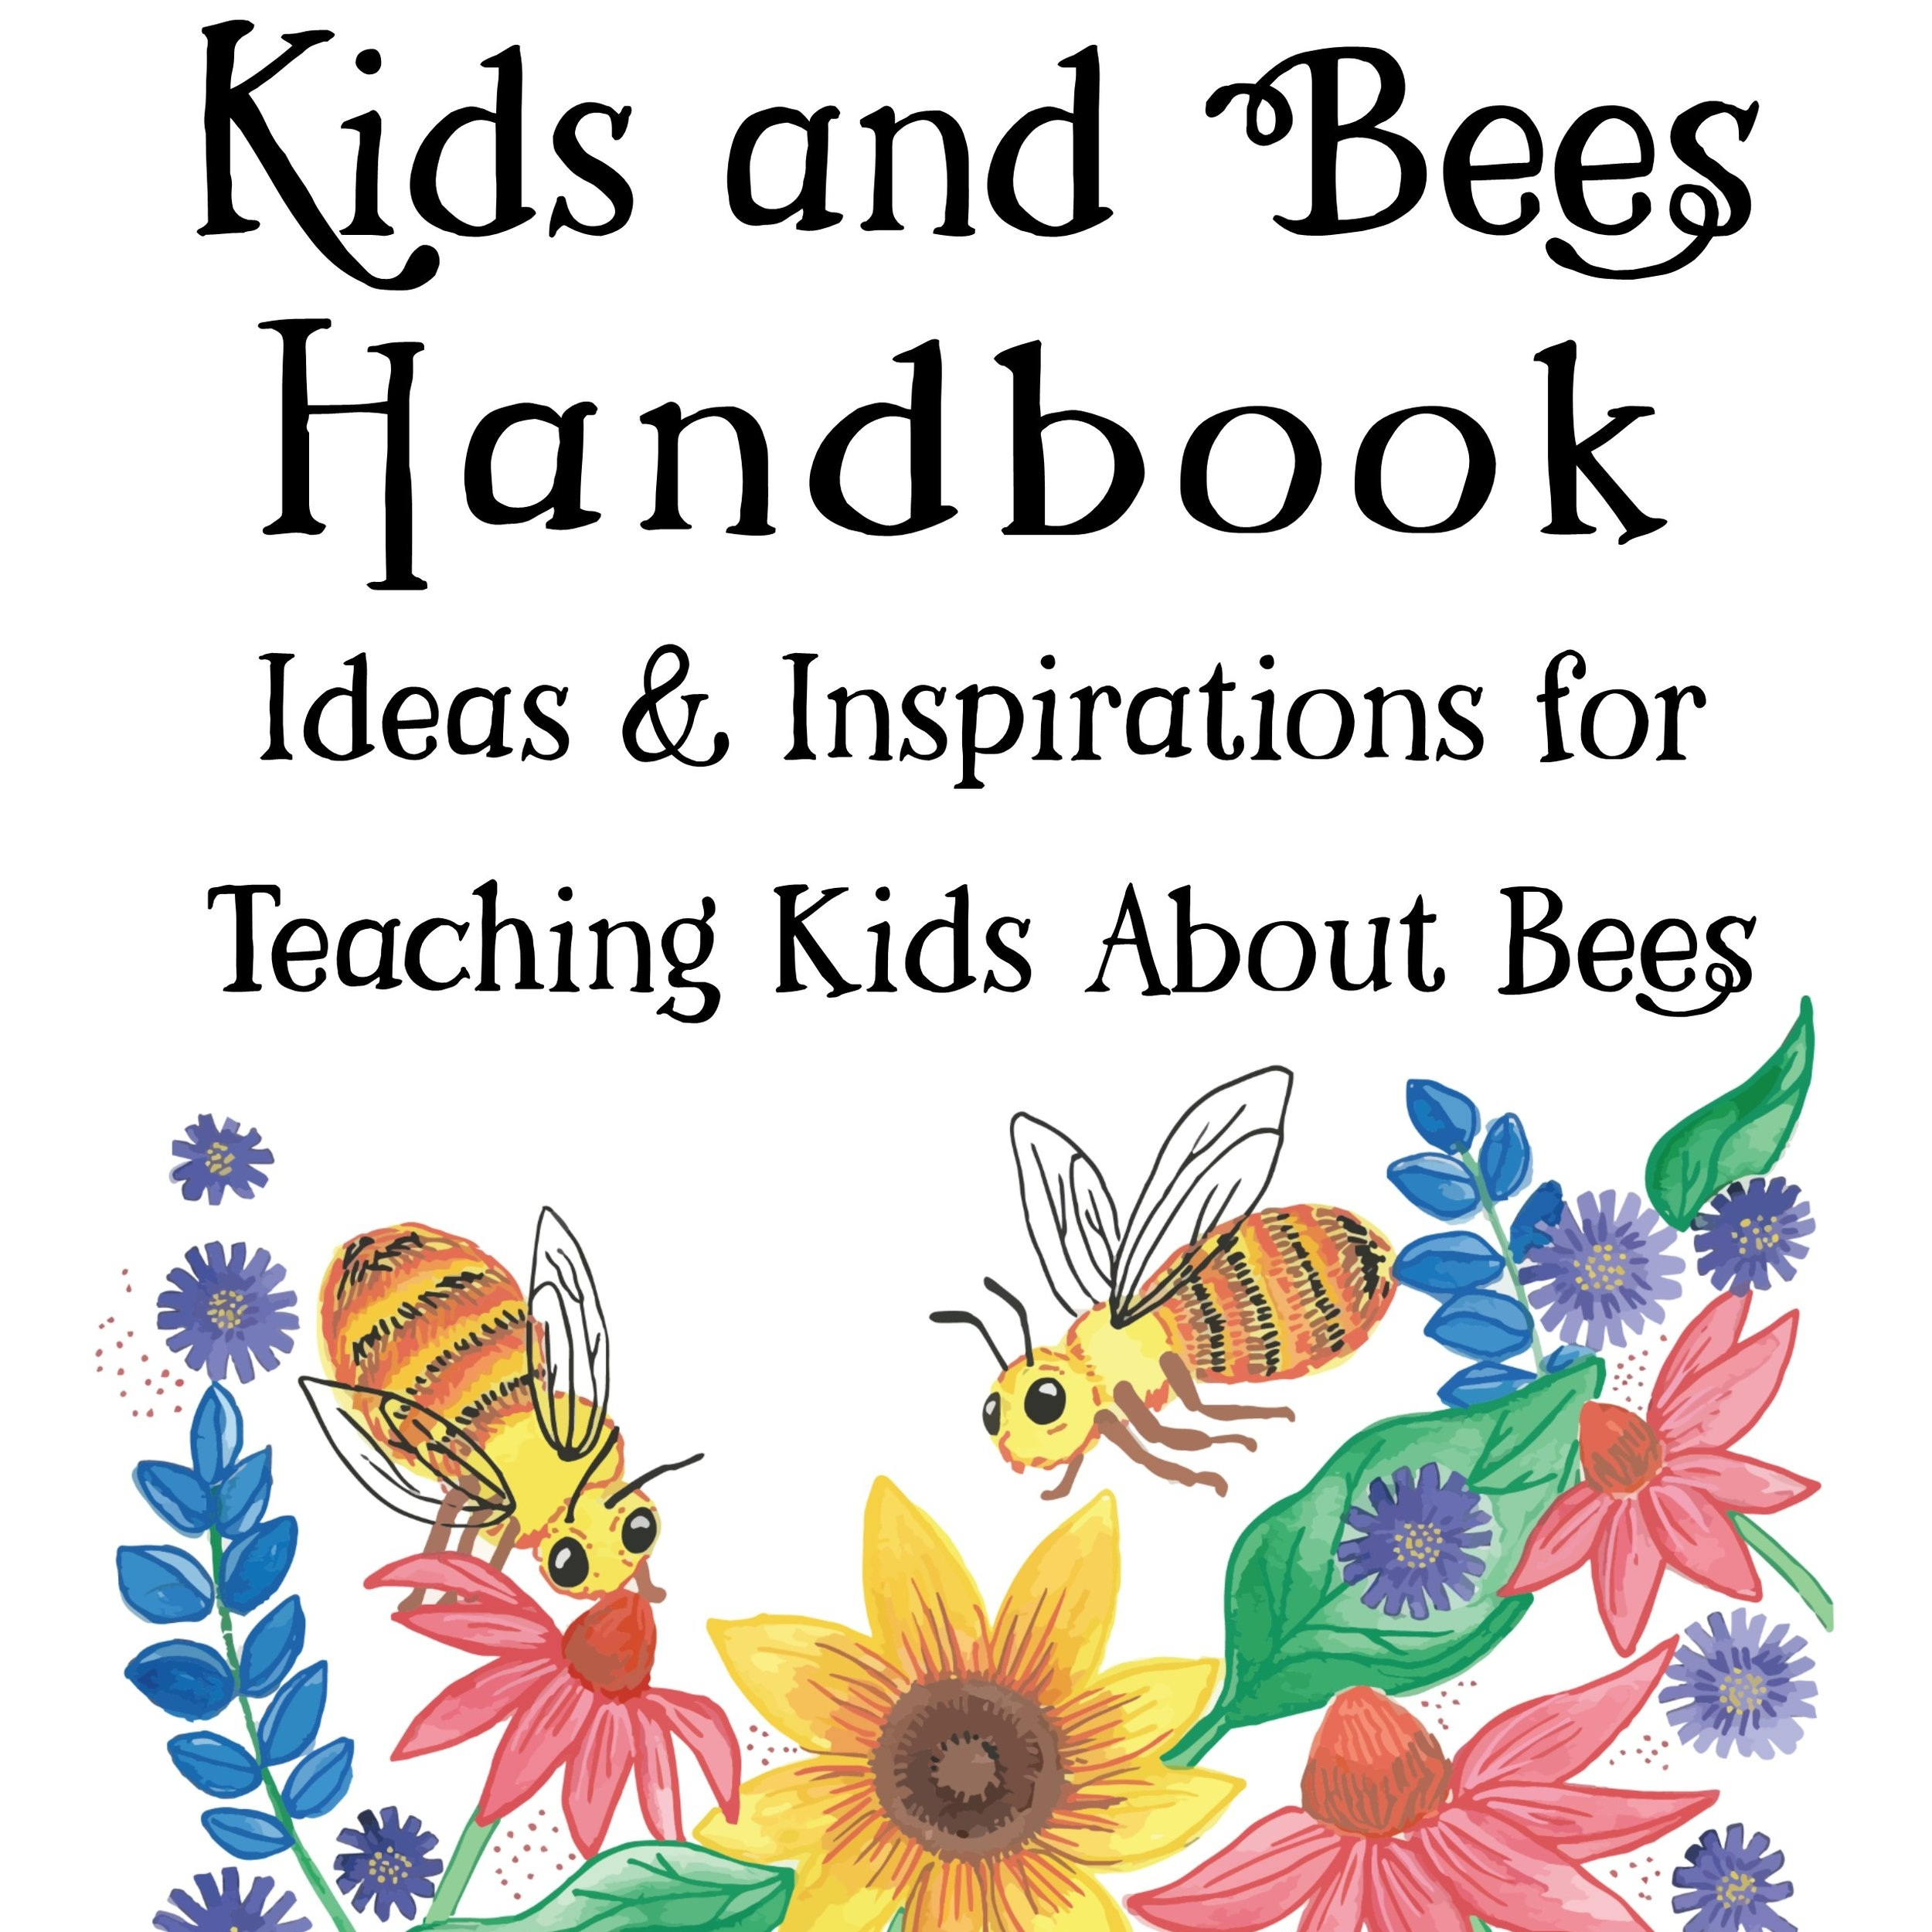 Kids and Bees Handbook Cover.jpg